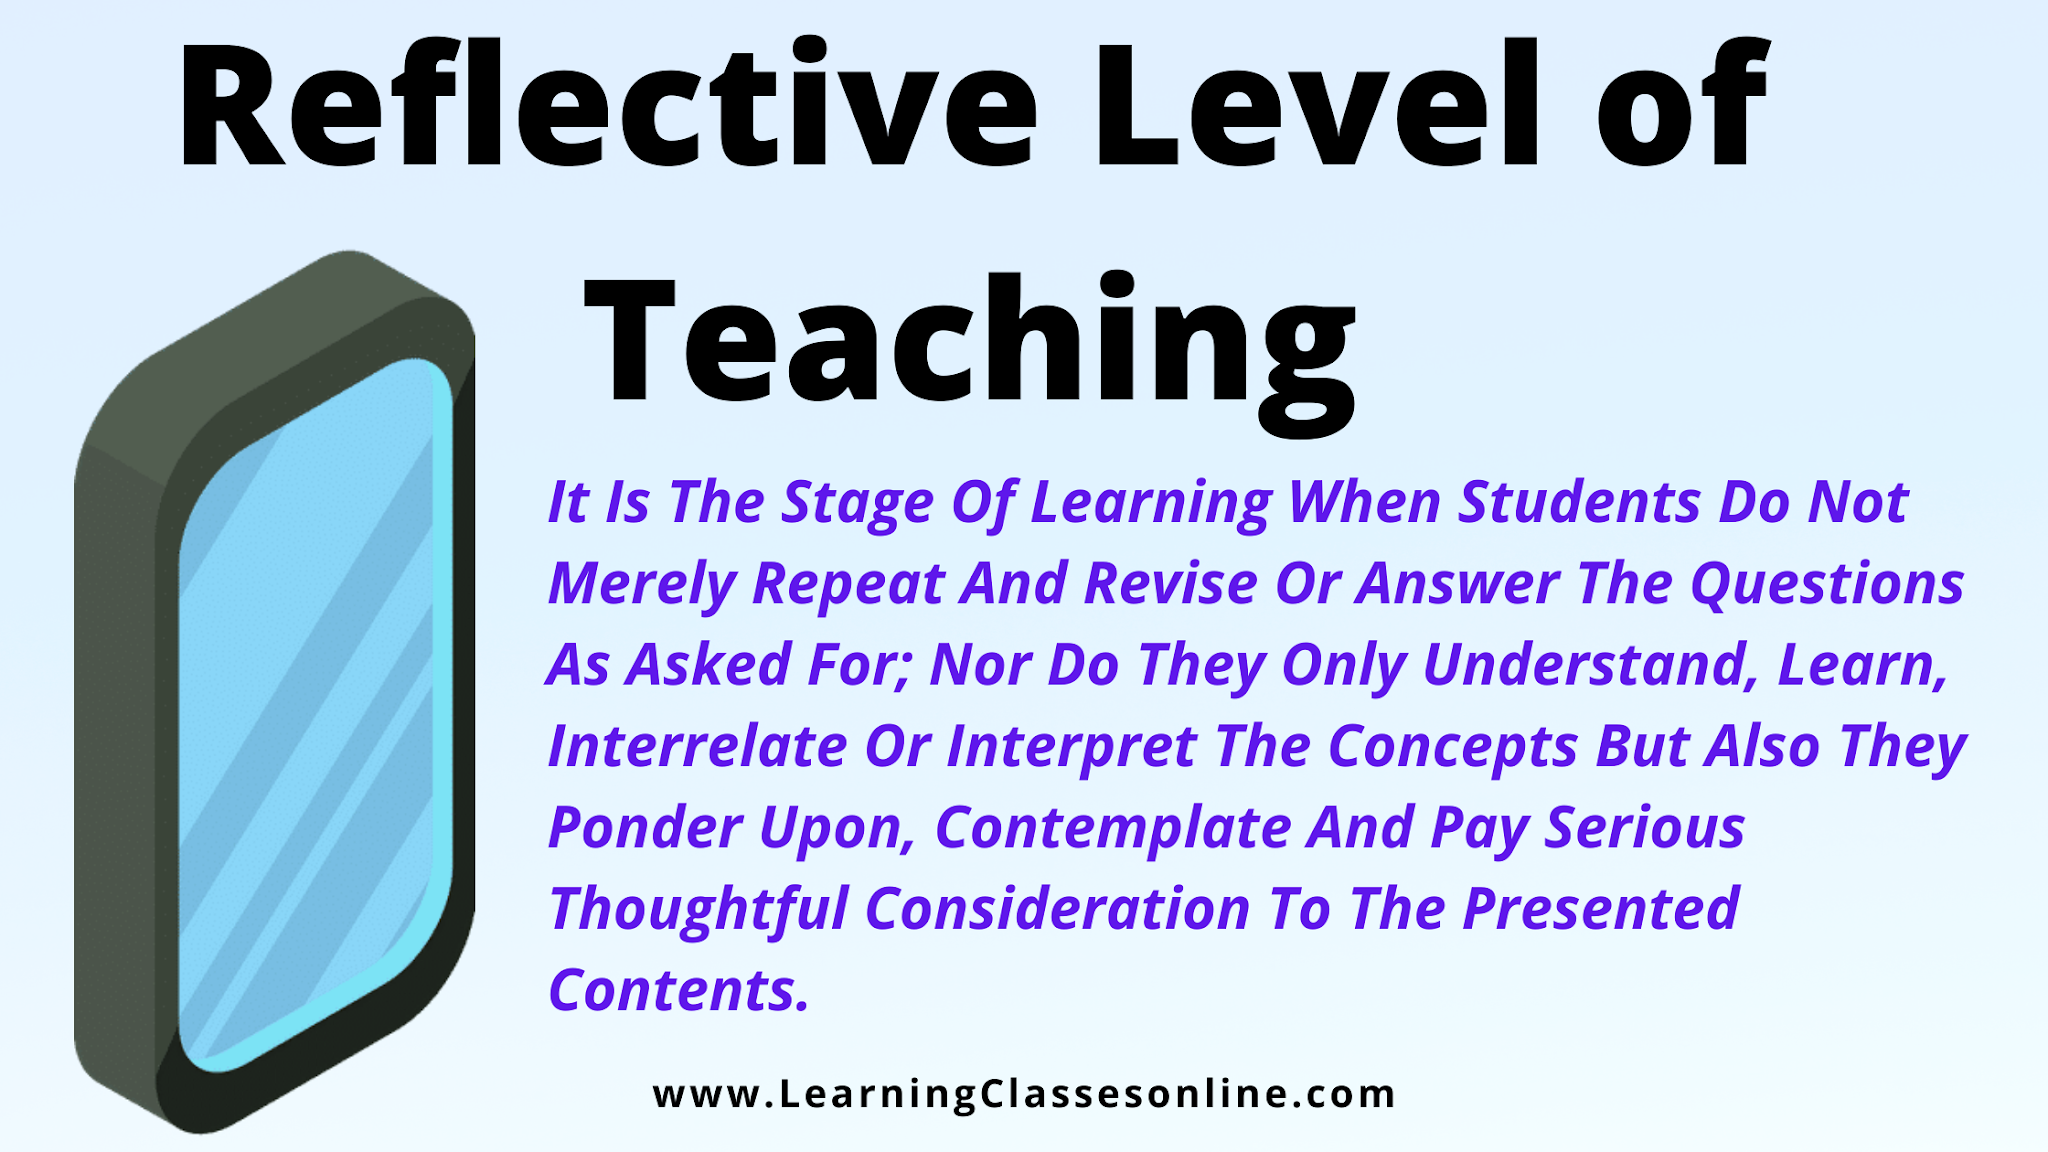 what is reflective level of teaching,reflective level of teaching ppt and pdf free download, reflective level of teaching,reflective level teaching, 3rd level teaching, Reflective Level of Teaching: Meaning, Introduction, Concept, Definition, Elements, Advantages and Disadvantages, and Suggestions